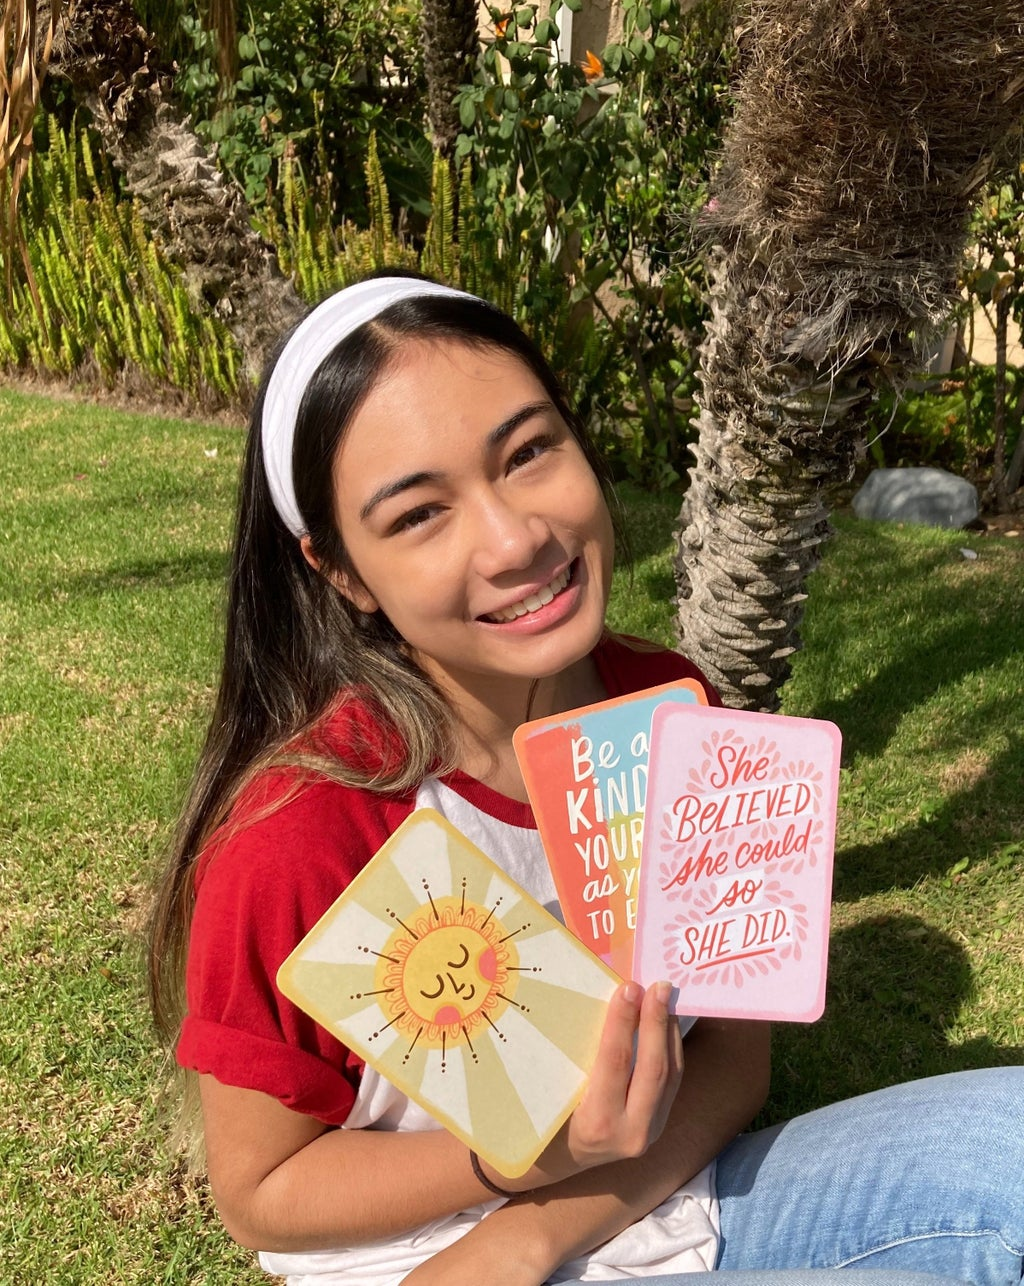 Girl holding Hallmark cards and smiling.